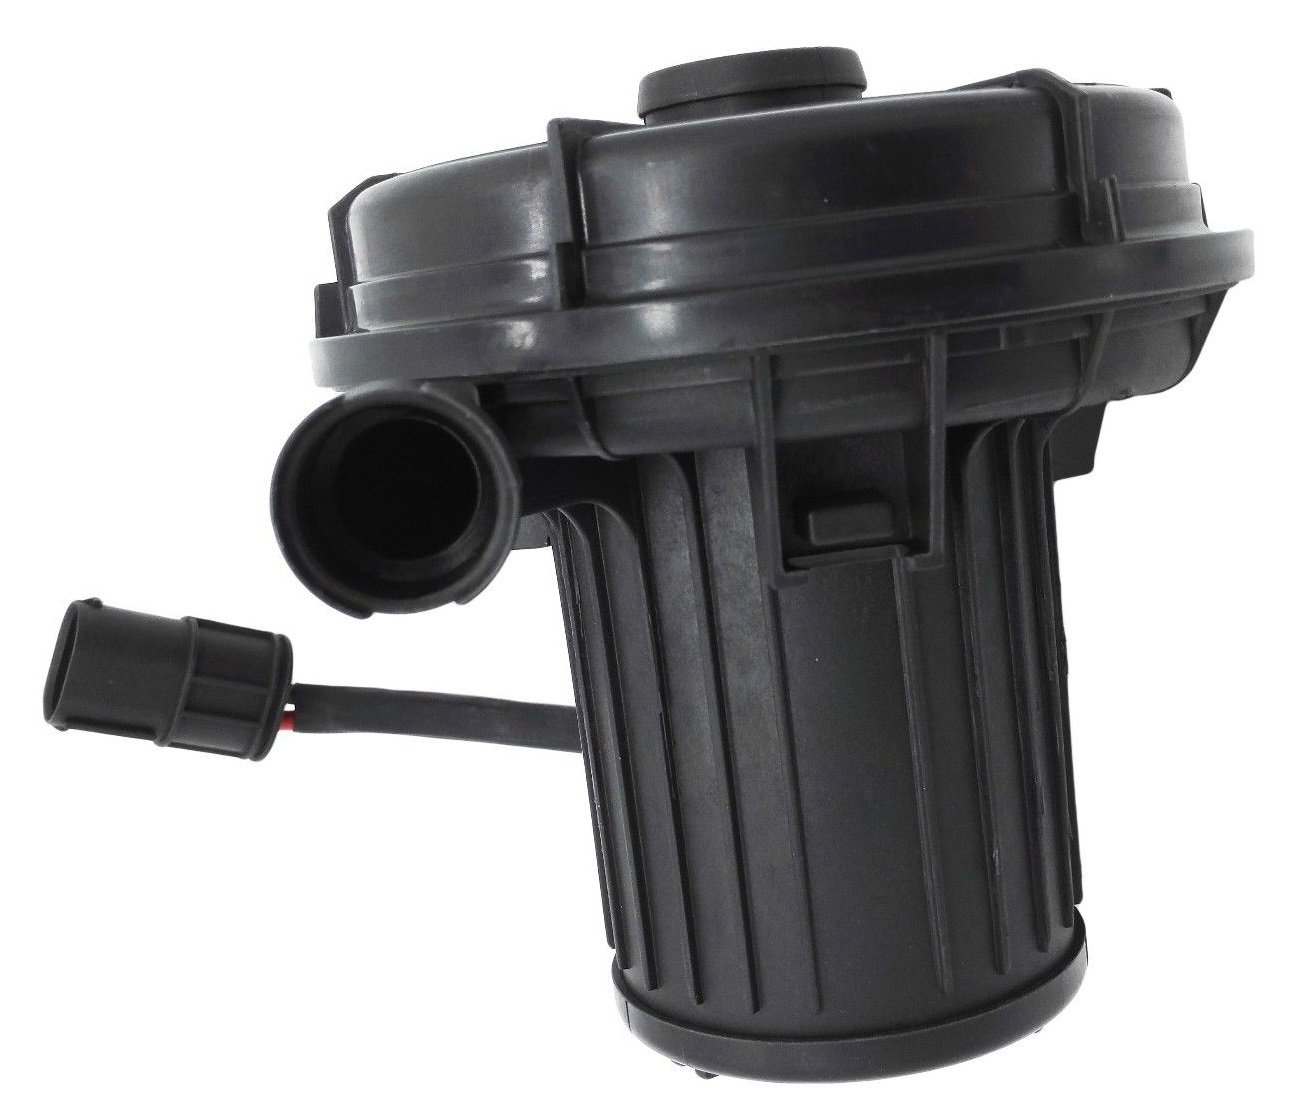 OKAY MOTOR Secondary Air Pump for BMW E46 E60 E63 E64 E83 X3 X5 M5 M6 M54 11727571589